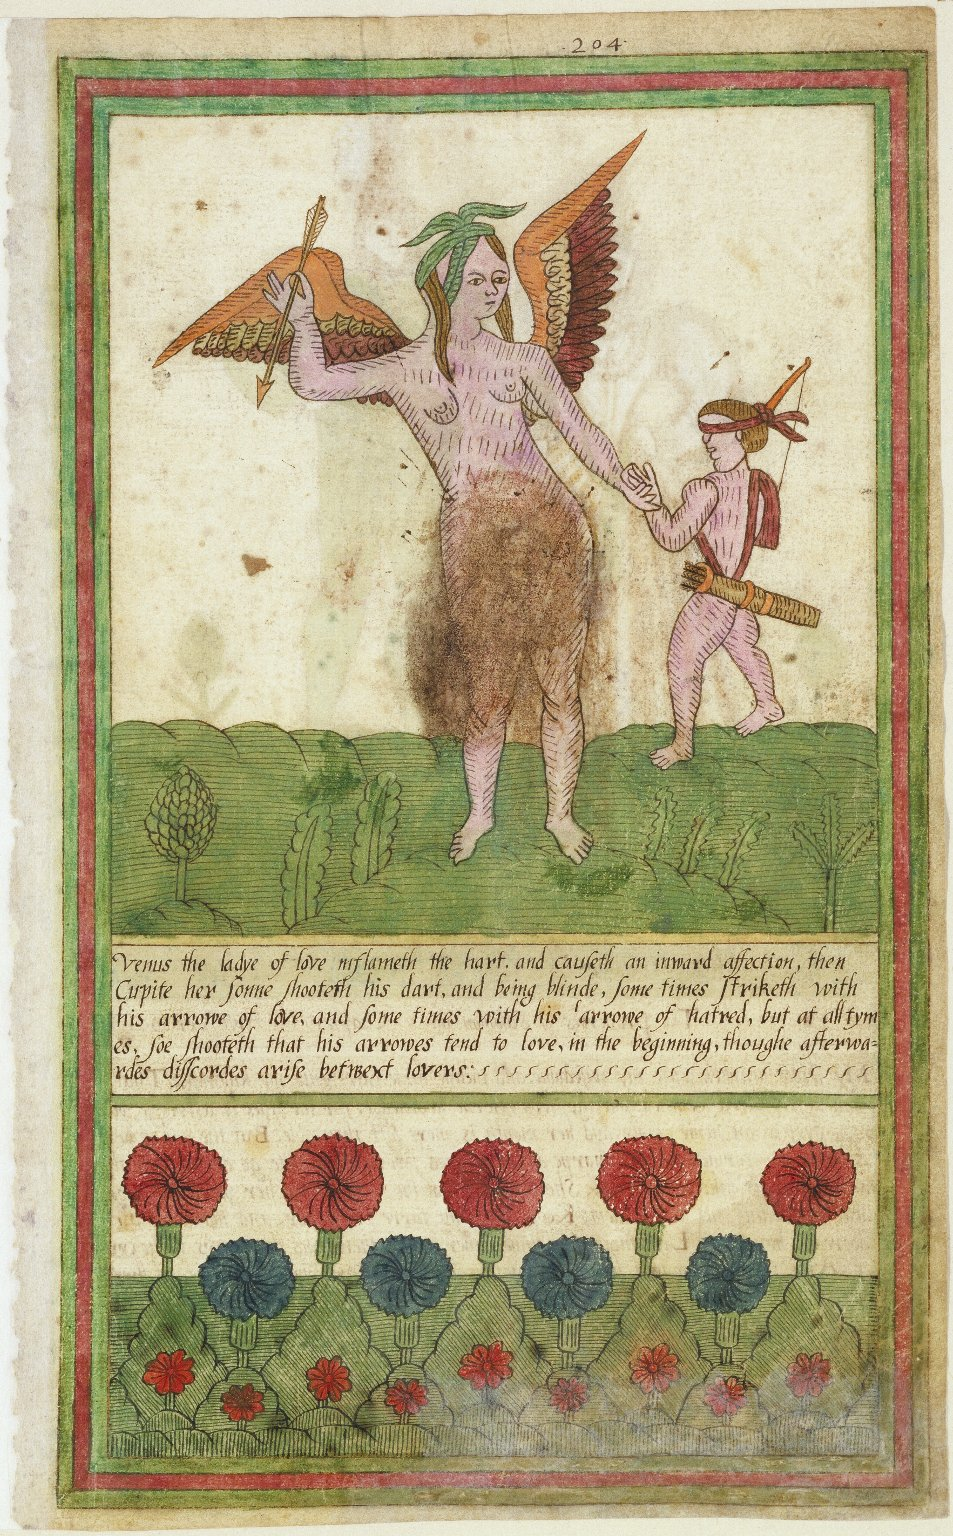 Crude, hand-drawn image of Venus and Cupid from the Trevelyon Miscellany. Cupid wears a blindfold.